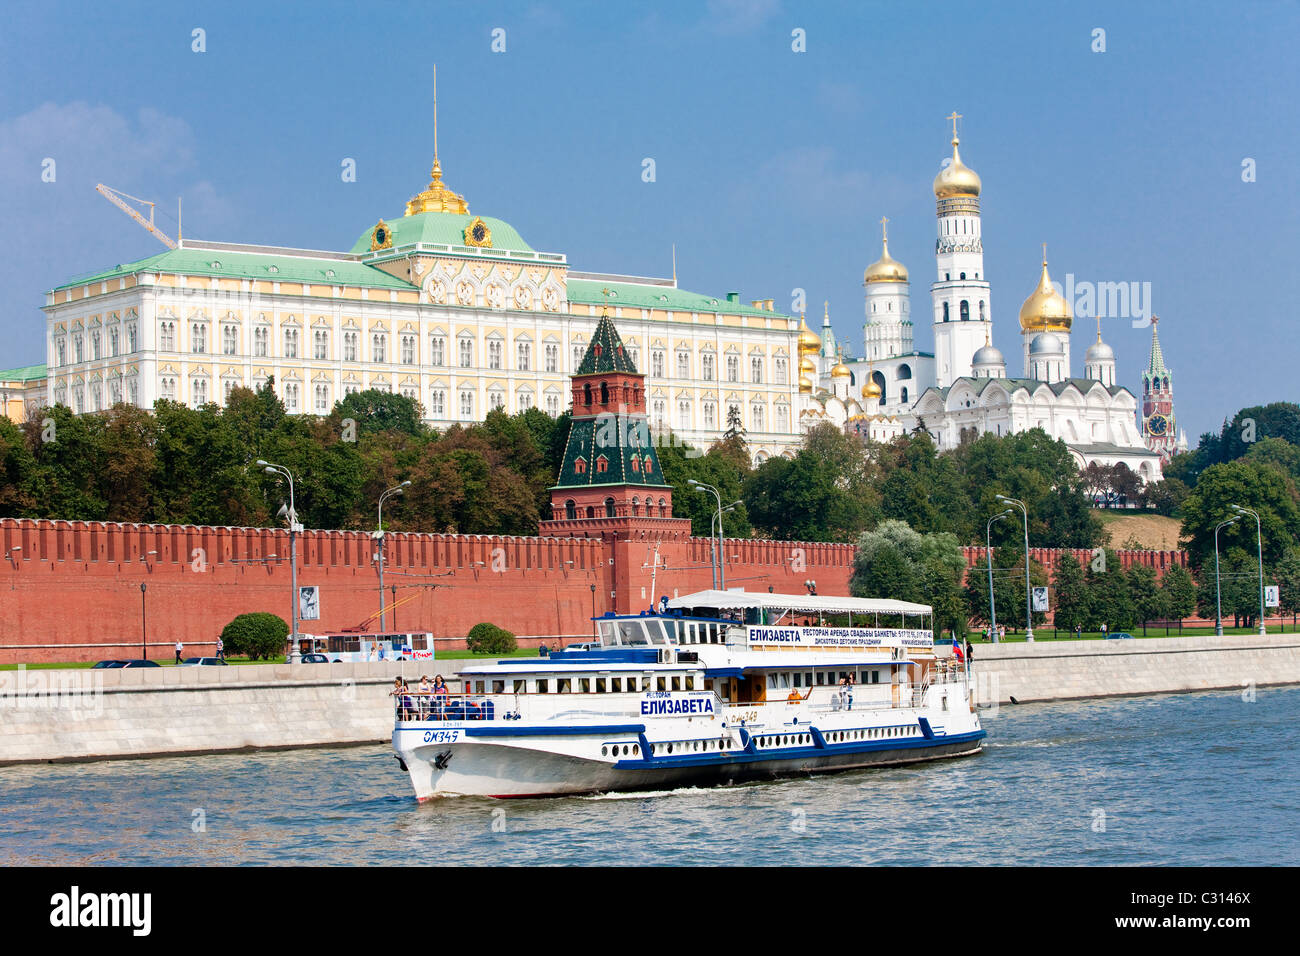 Grand Kremlin Palace and the Church of the Deposition of the Robe, Moscow Kremlin, Russian Federation - Stock Image